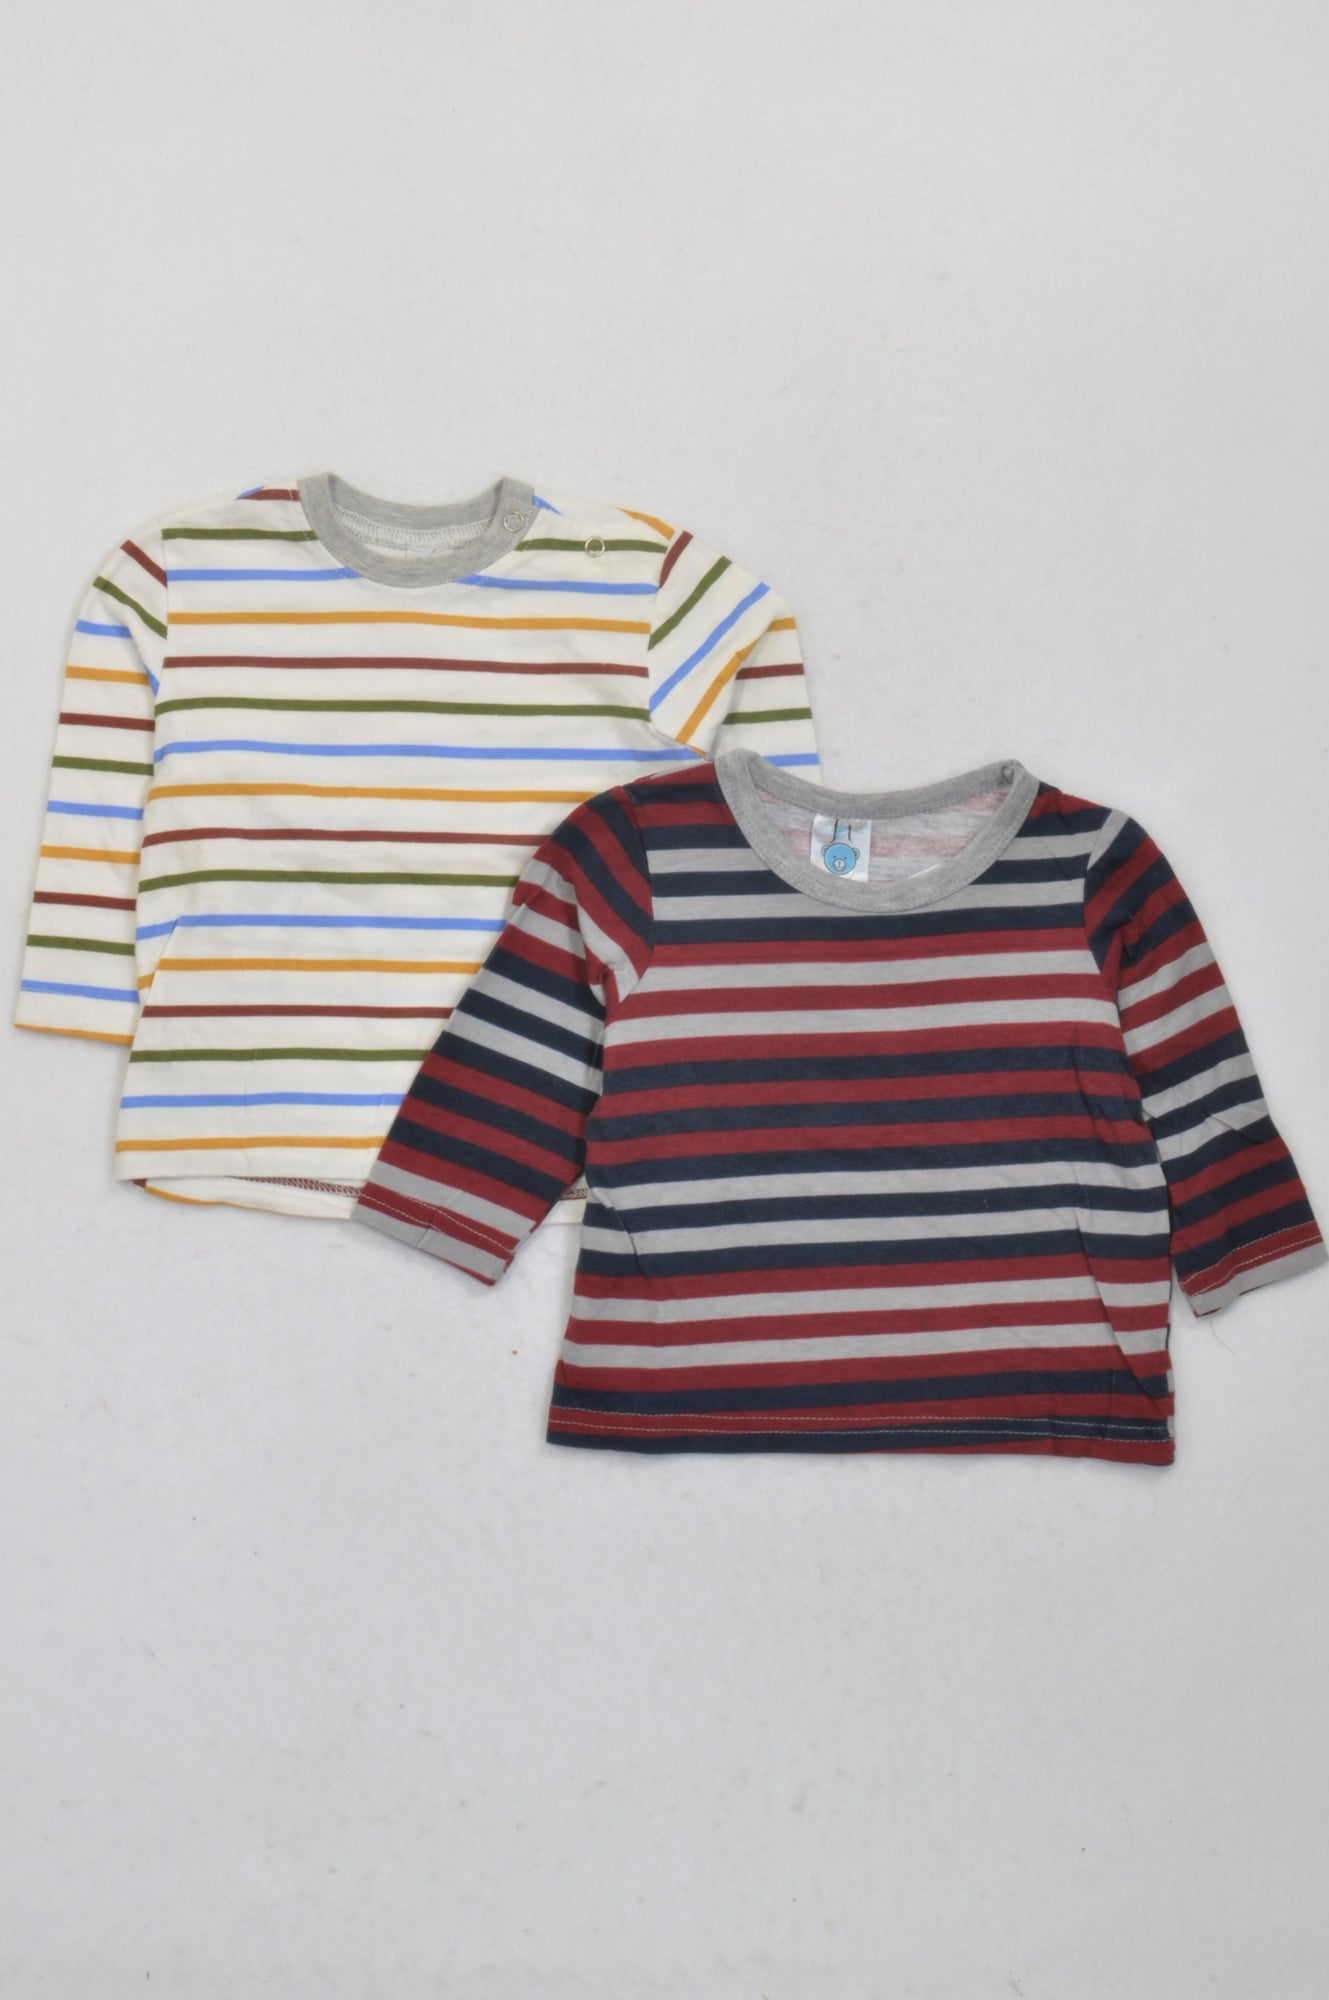 Ackermans 2 Pack Multicolored Striped T-Shirts Boys 3-6 months